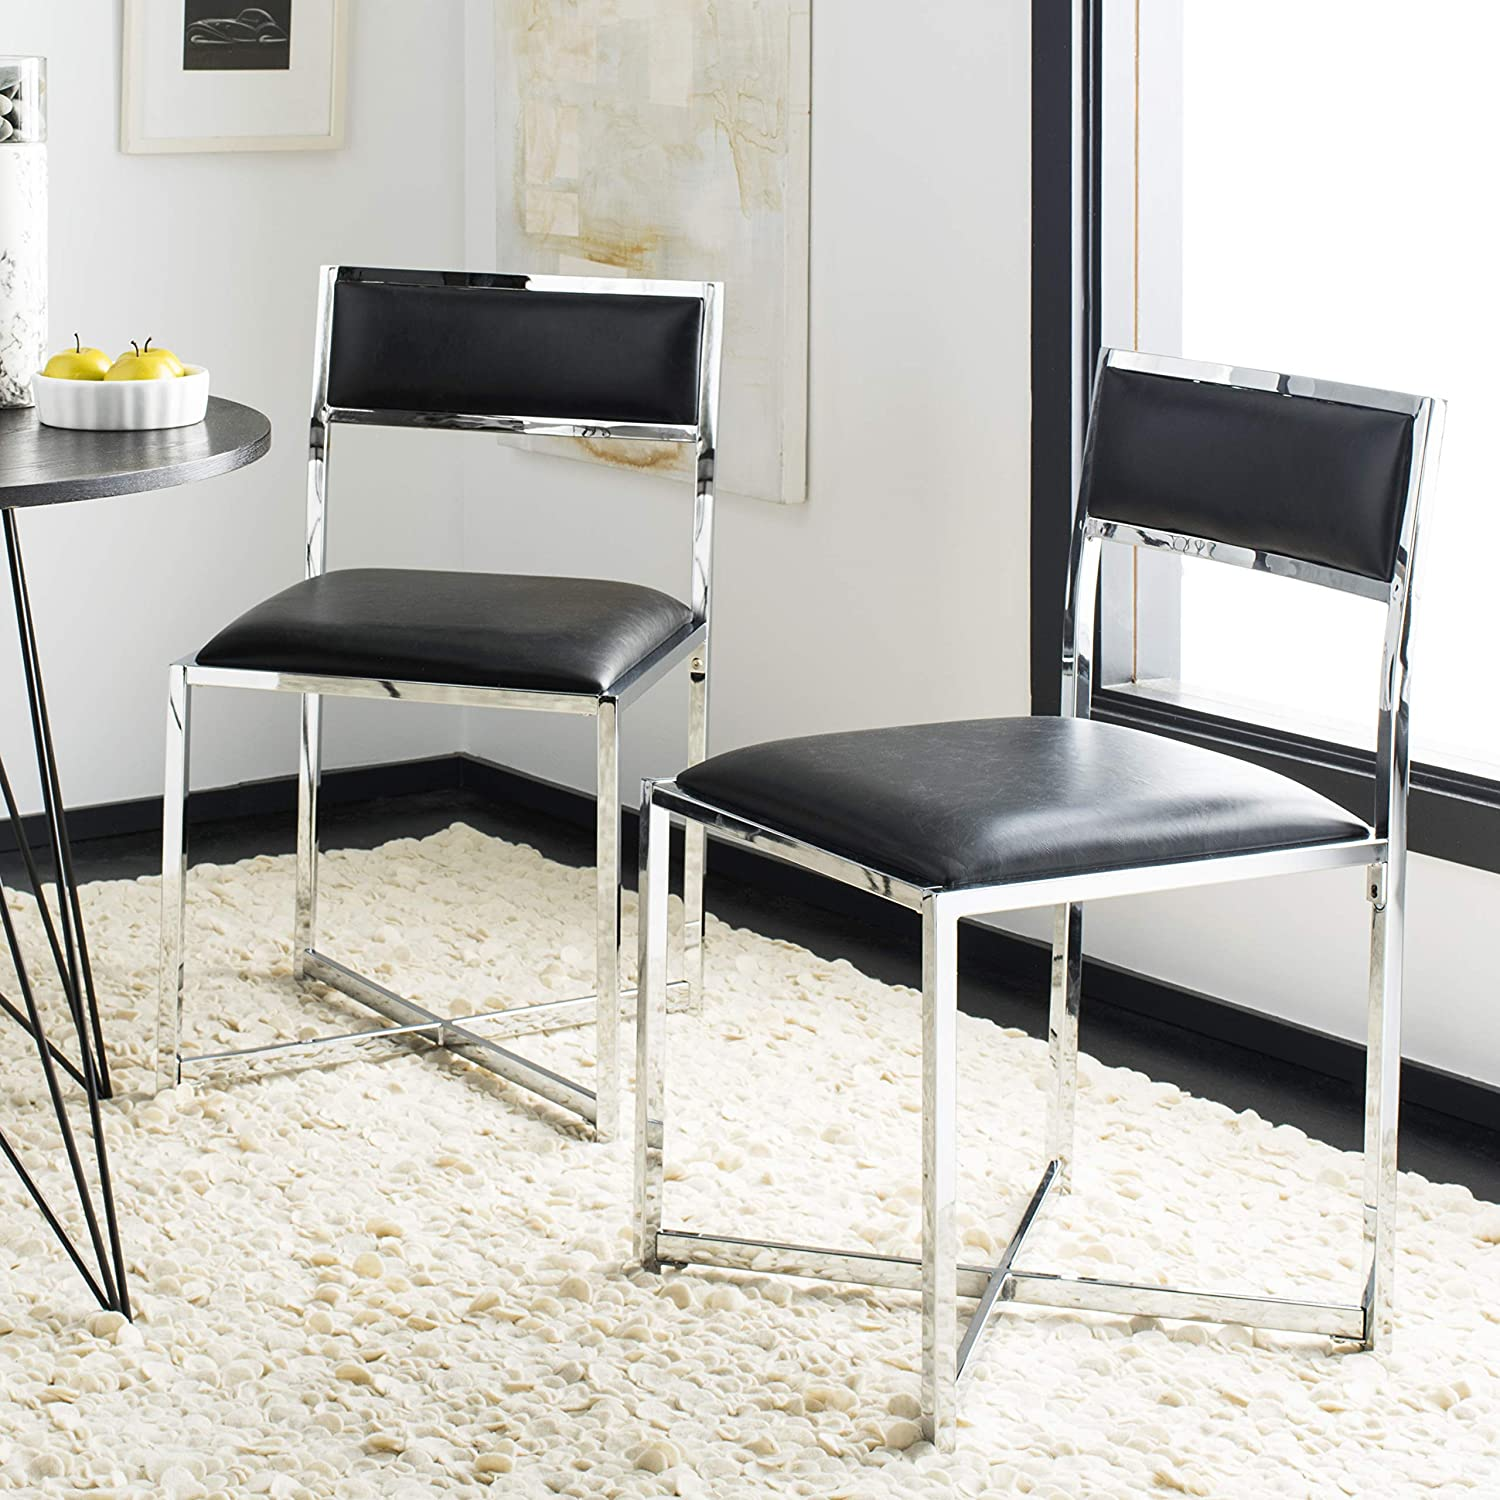 Safavieh Home Menken Black Faux Leather and Chrome Side Chair, Set of 2